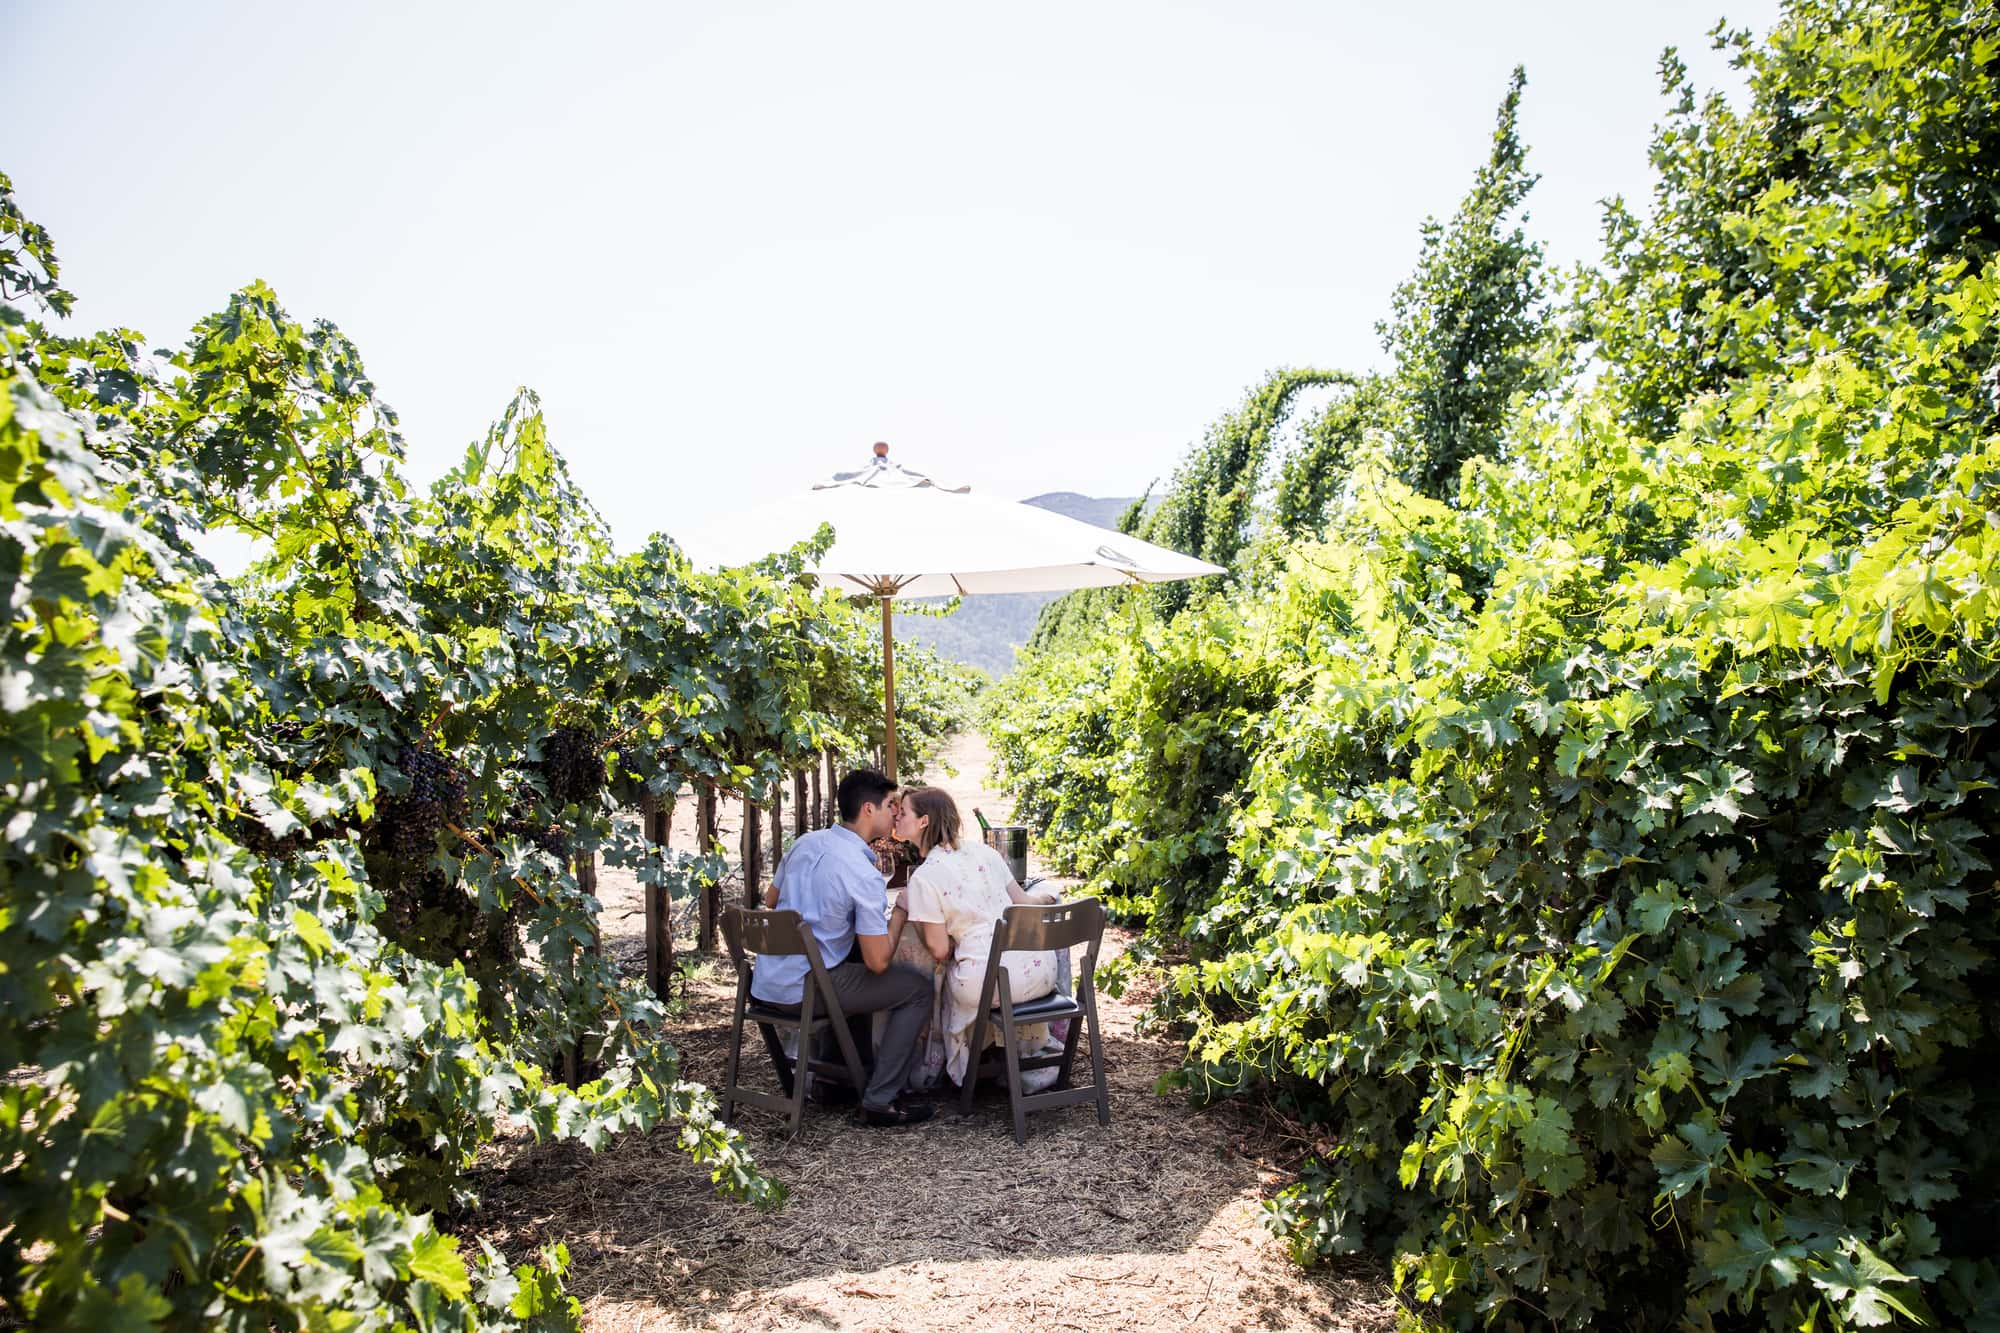 Best Proposal locations - Peju Province Winery, St Helena, CA